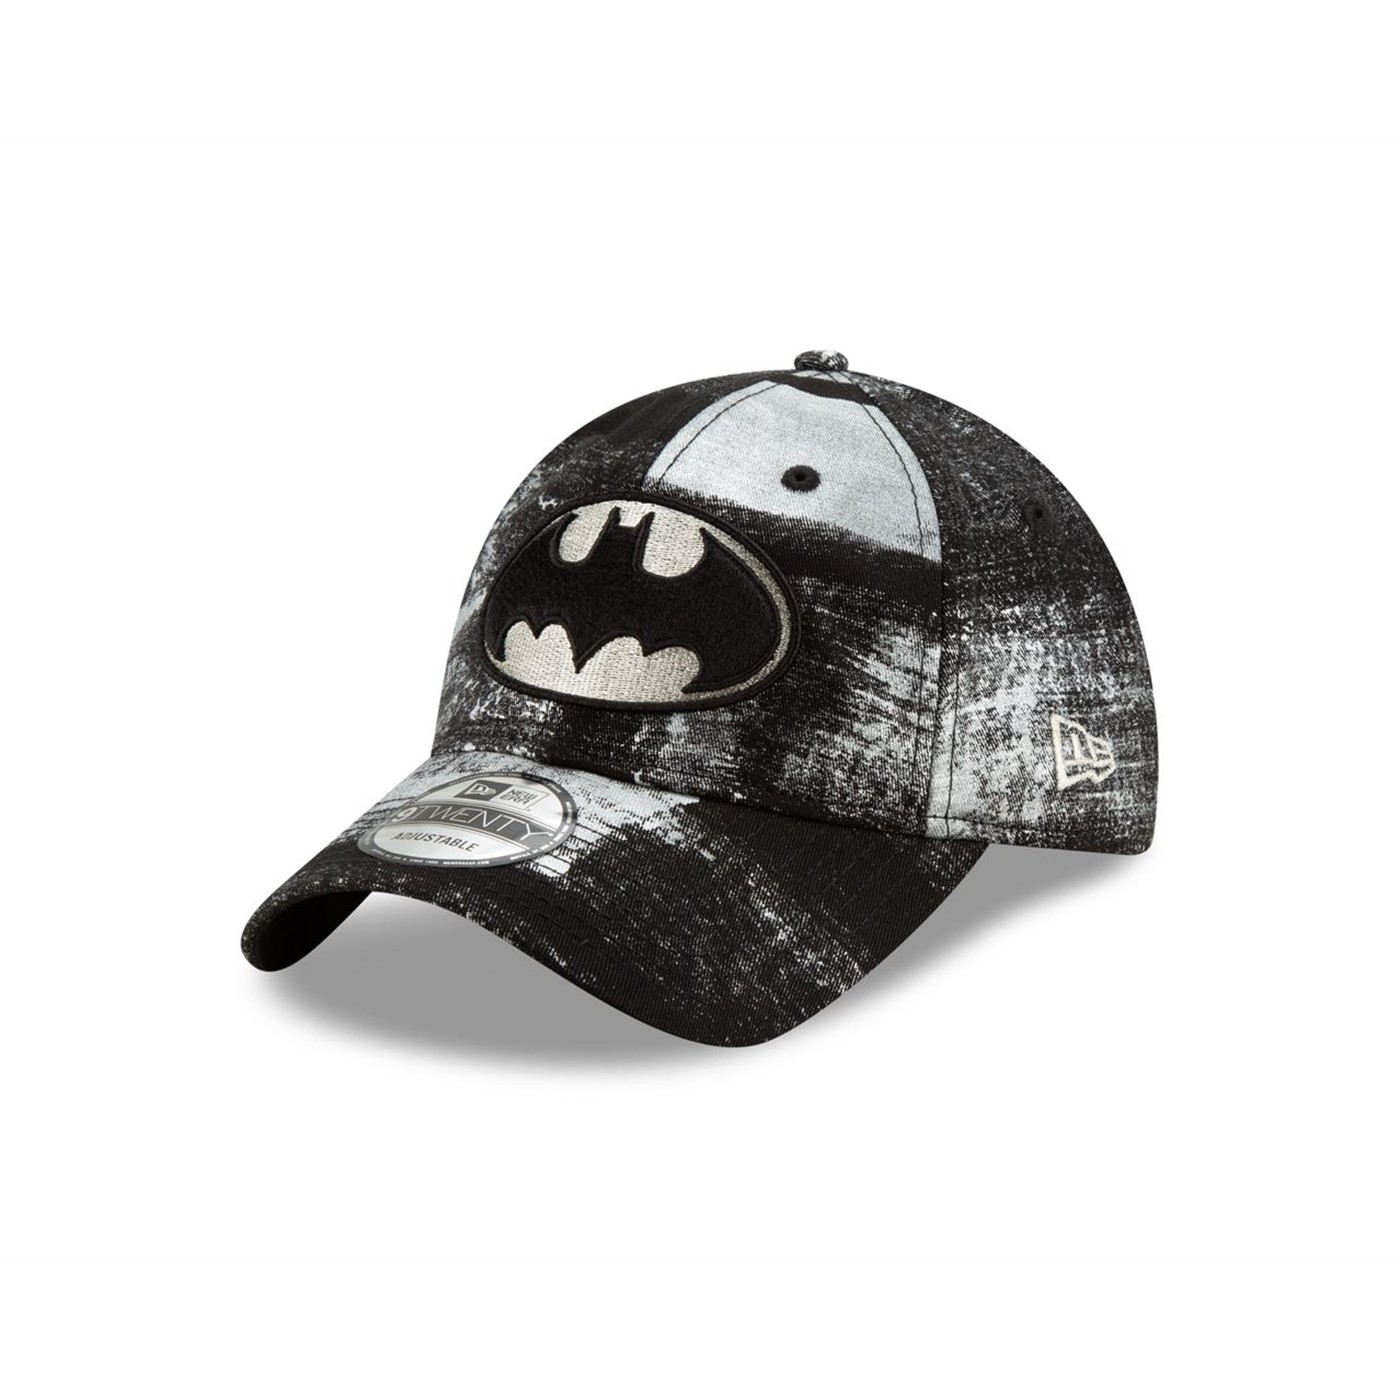 Batman Shades of Black New Era 9Twenty Adjustable Hat